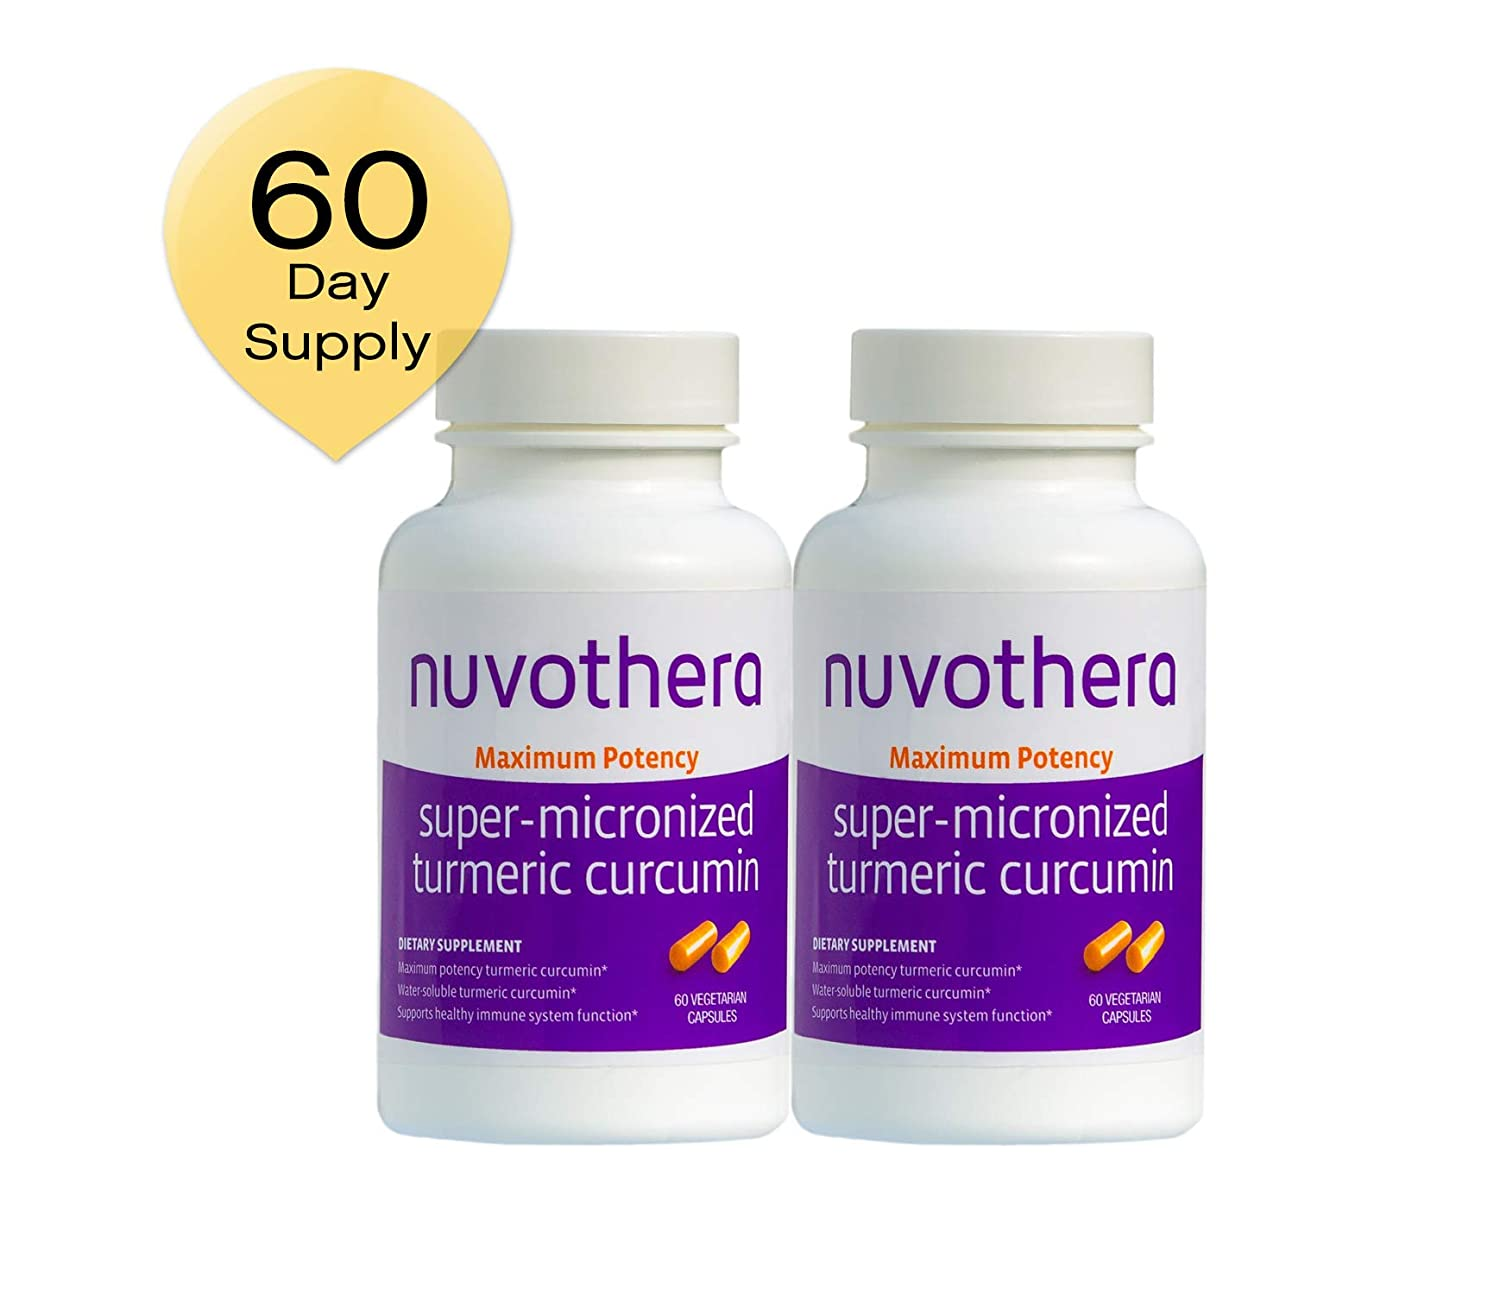 Nuvothera Super Micronized Turmeric Curcumin Supplement 60 Capsules 500 mg , 2 Count, Maximum Potency Whole Turmeric Root and Full Strength Curcumin-Natural Anti-Inflammatory, 2 Month Supply